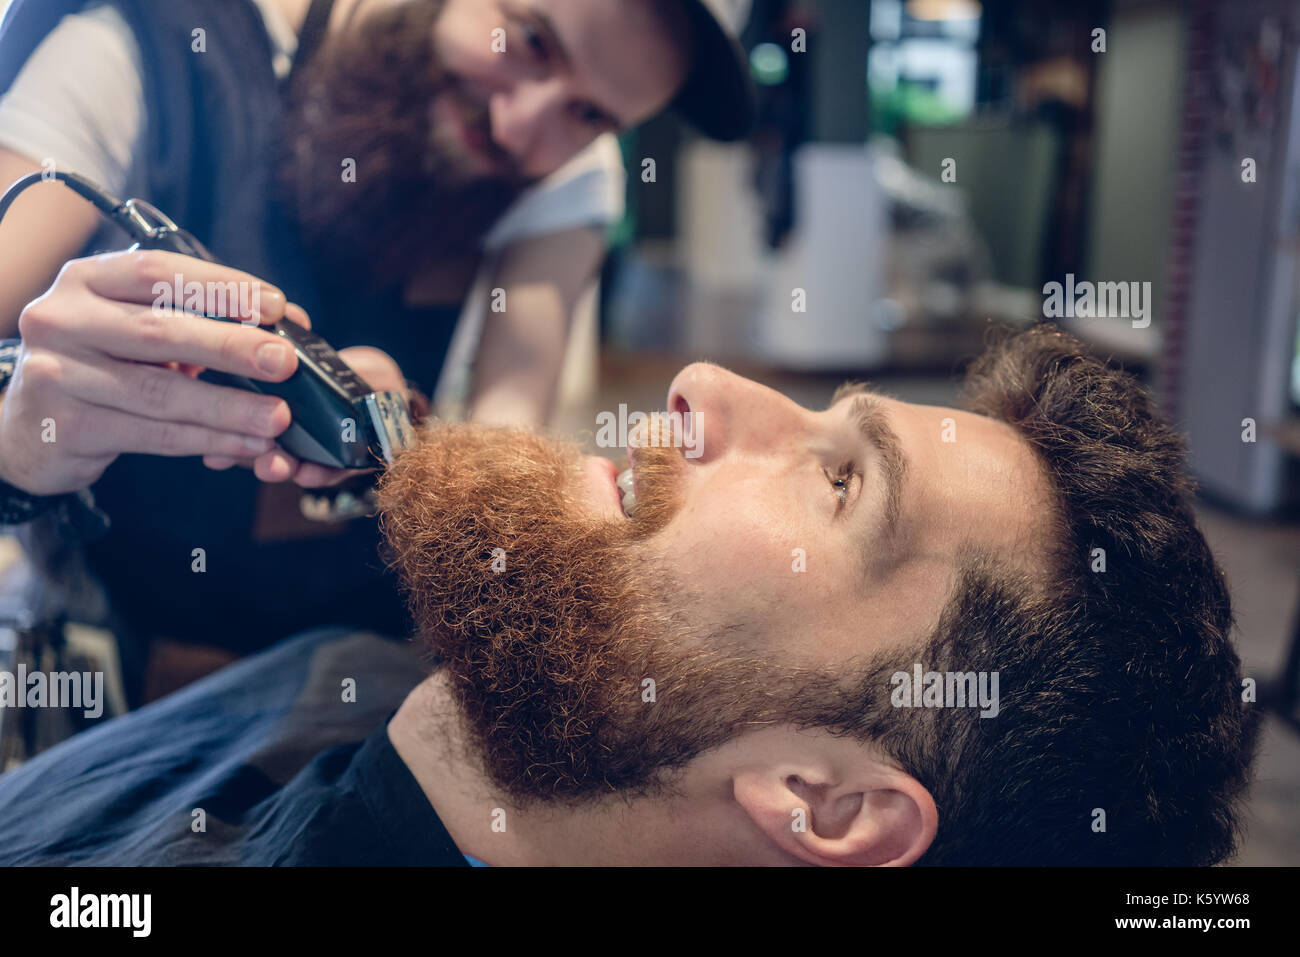 Close-up of the head of a man and the hand of a barber trimming  - Stock Image